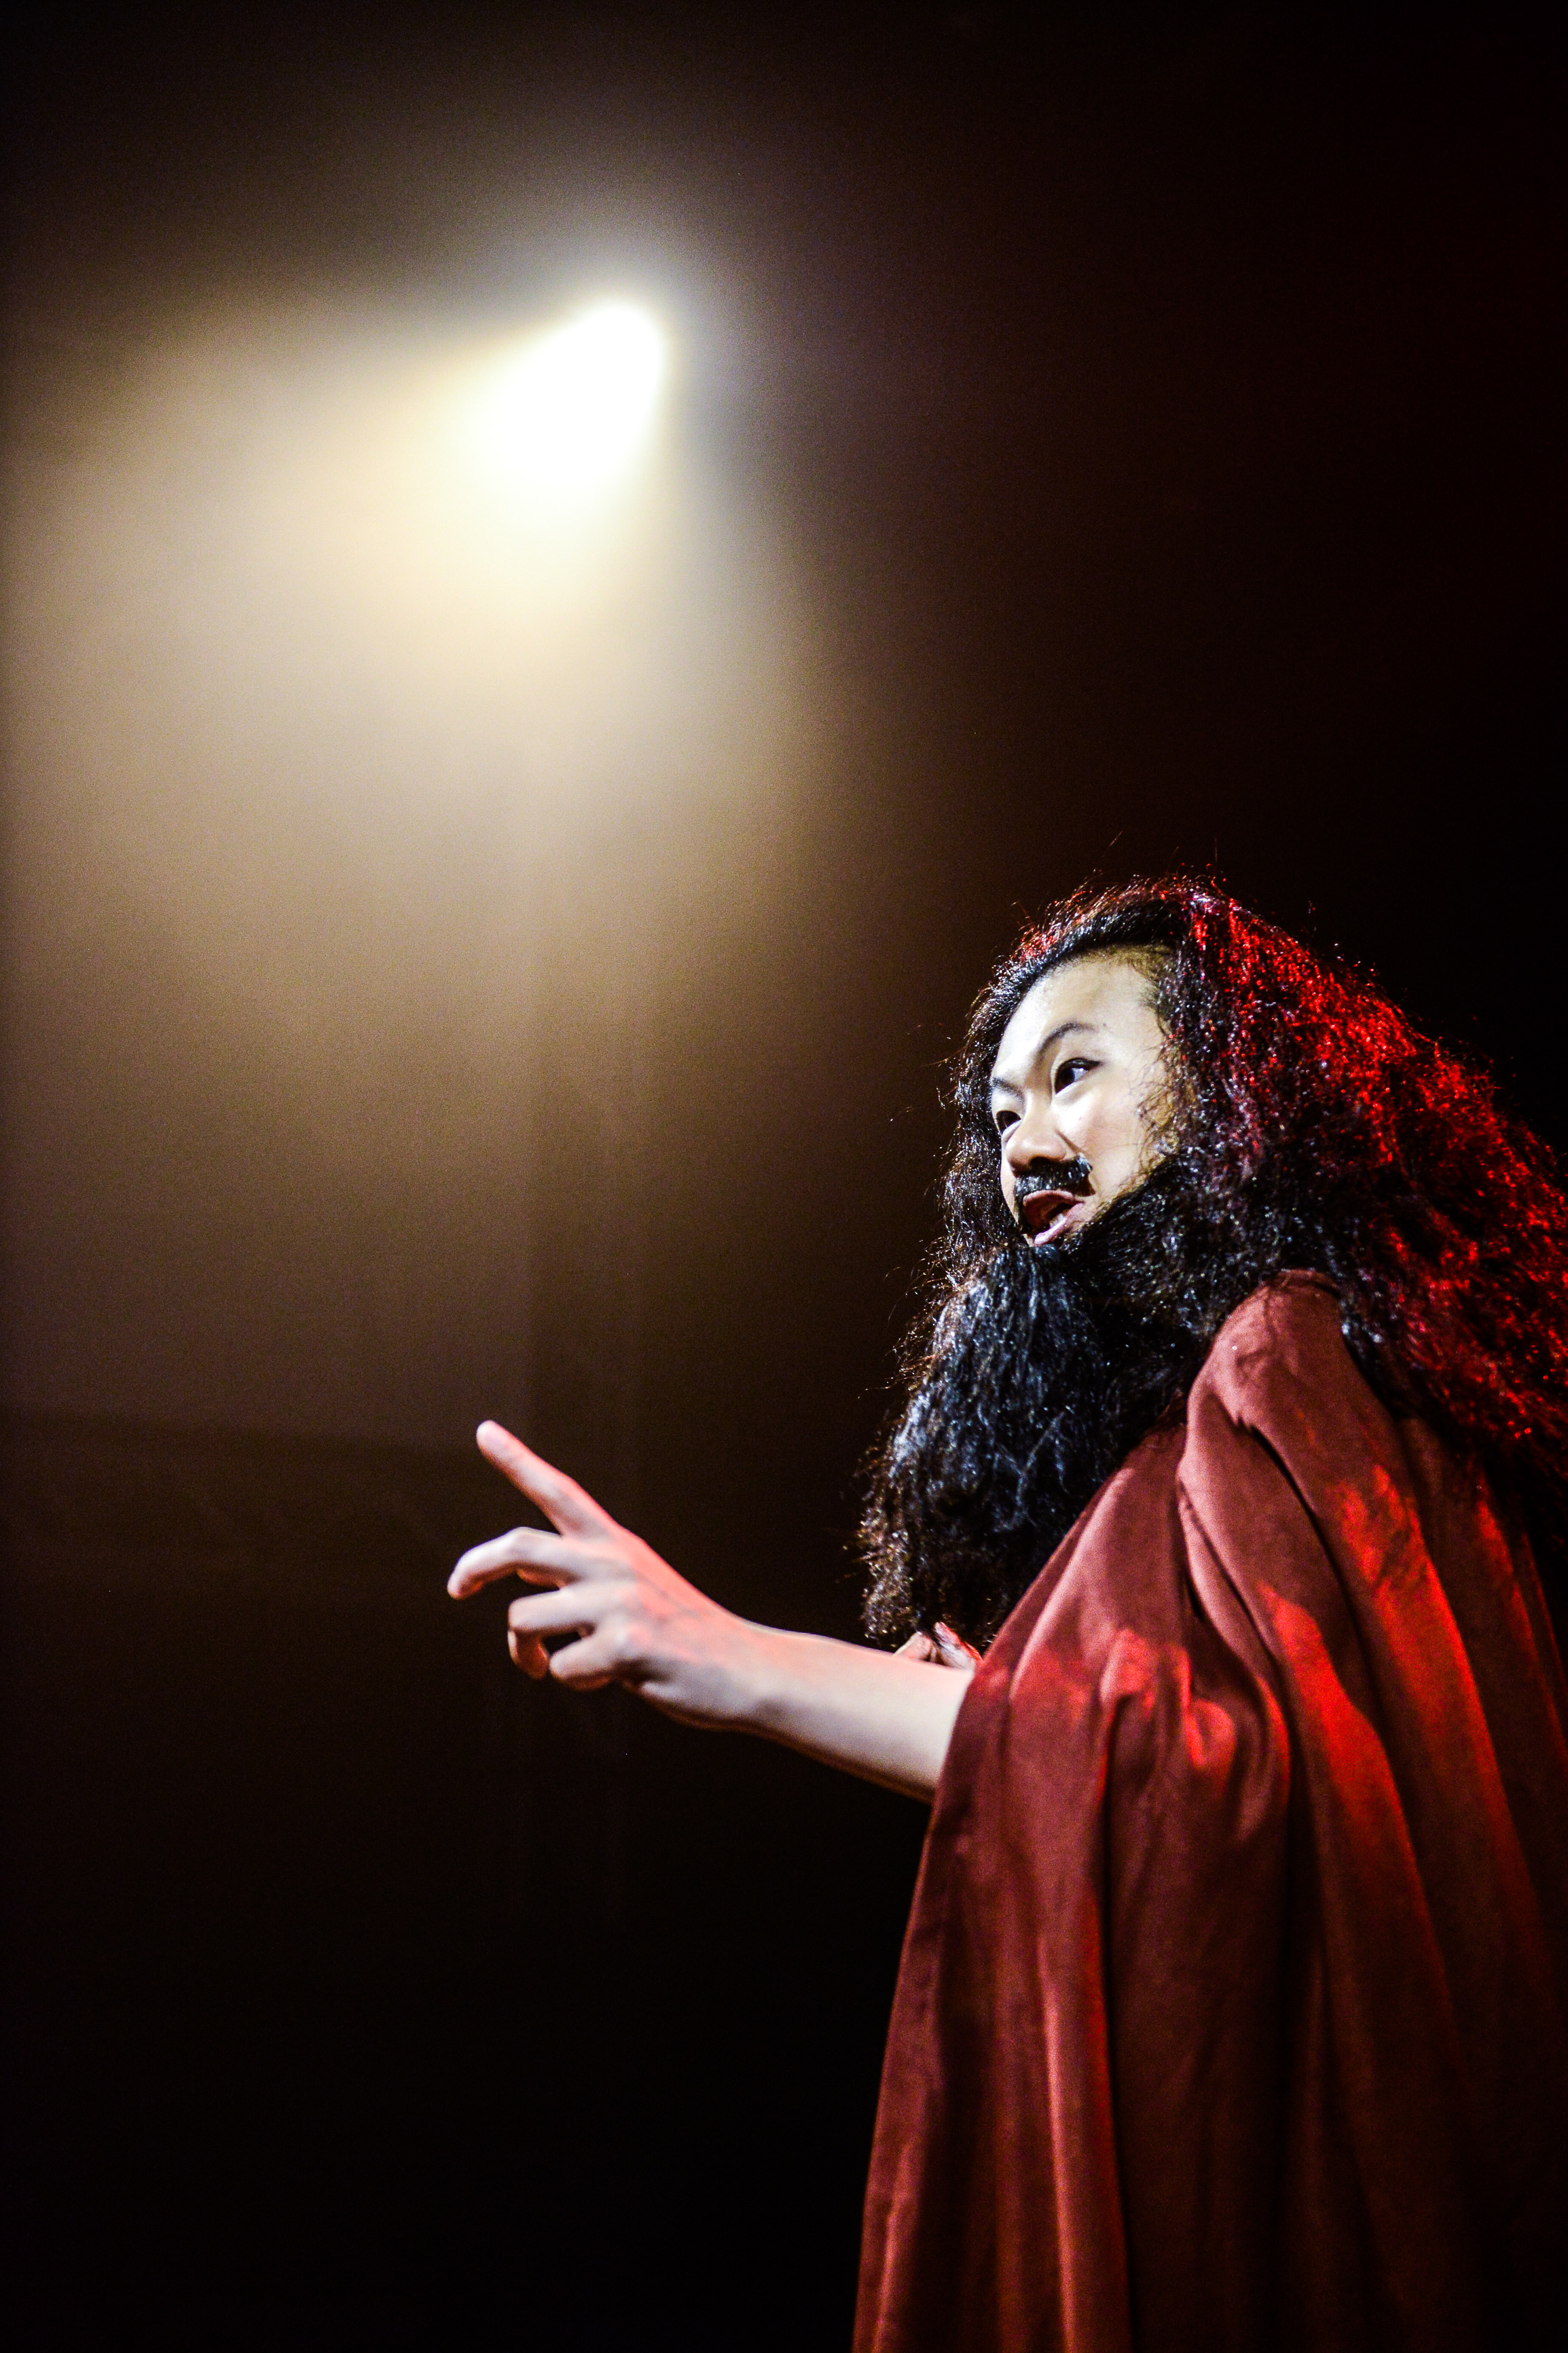 Ai ah! This Menelaus is really troublesome | Featuring: Michelle Li | Tagged as: Show, The Furies Variations | Photo: Fung Wai Sun |  (Rooftop Productions • Hong Kong Theatre Company)